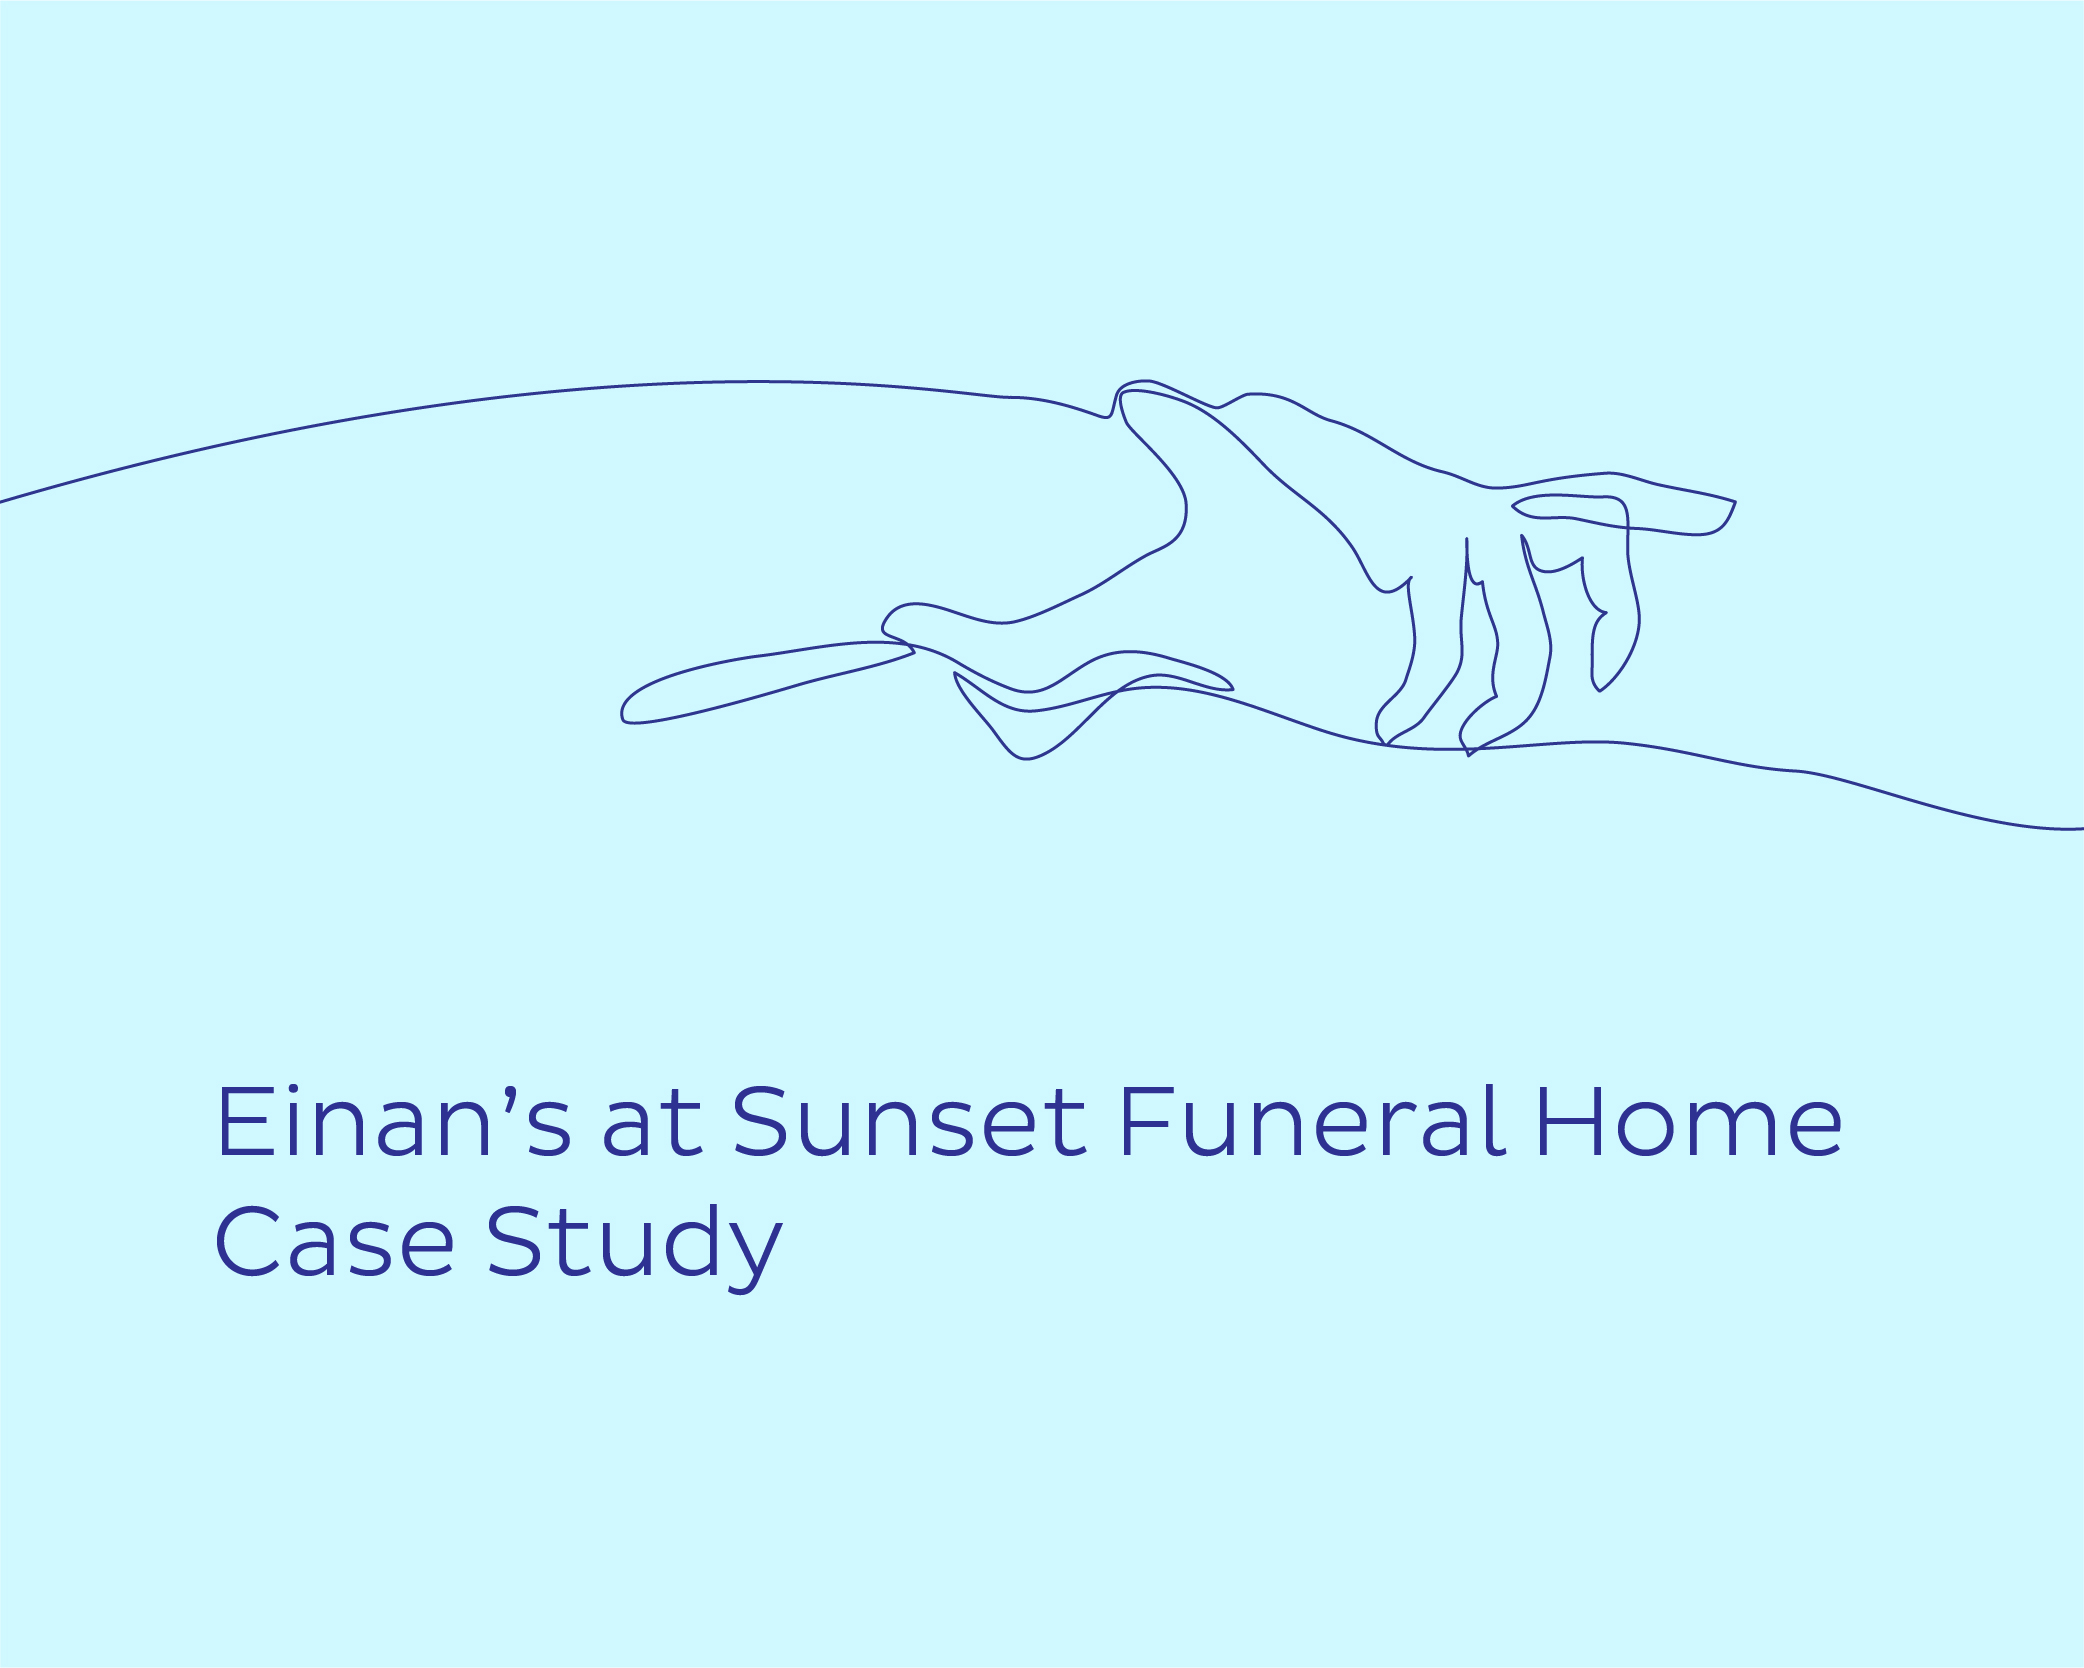 Case Study: Einan's at Sunset Funeral Home Leverages OneRoom's Live-streaming Solution